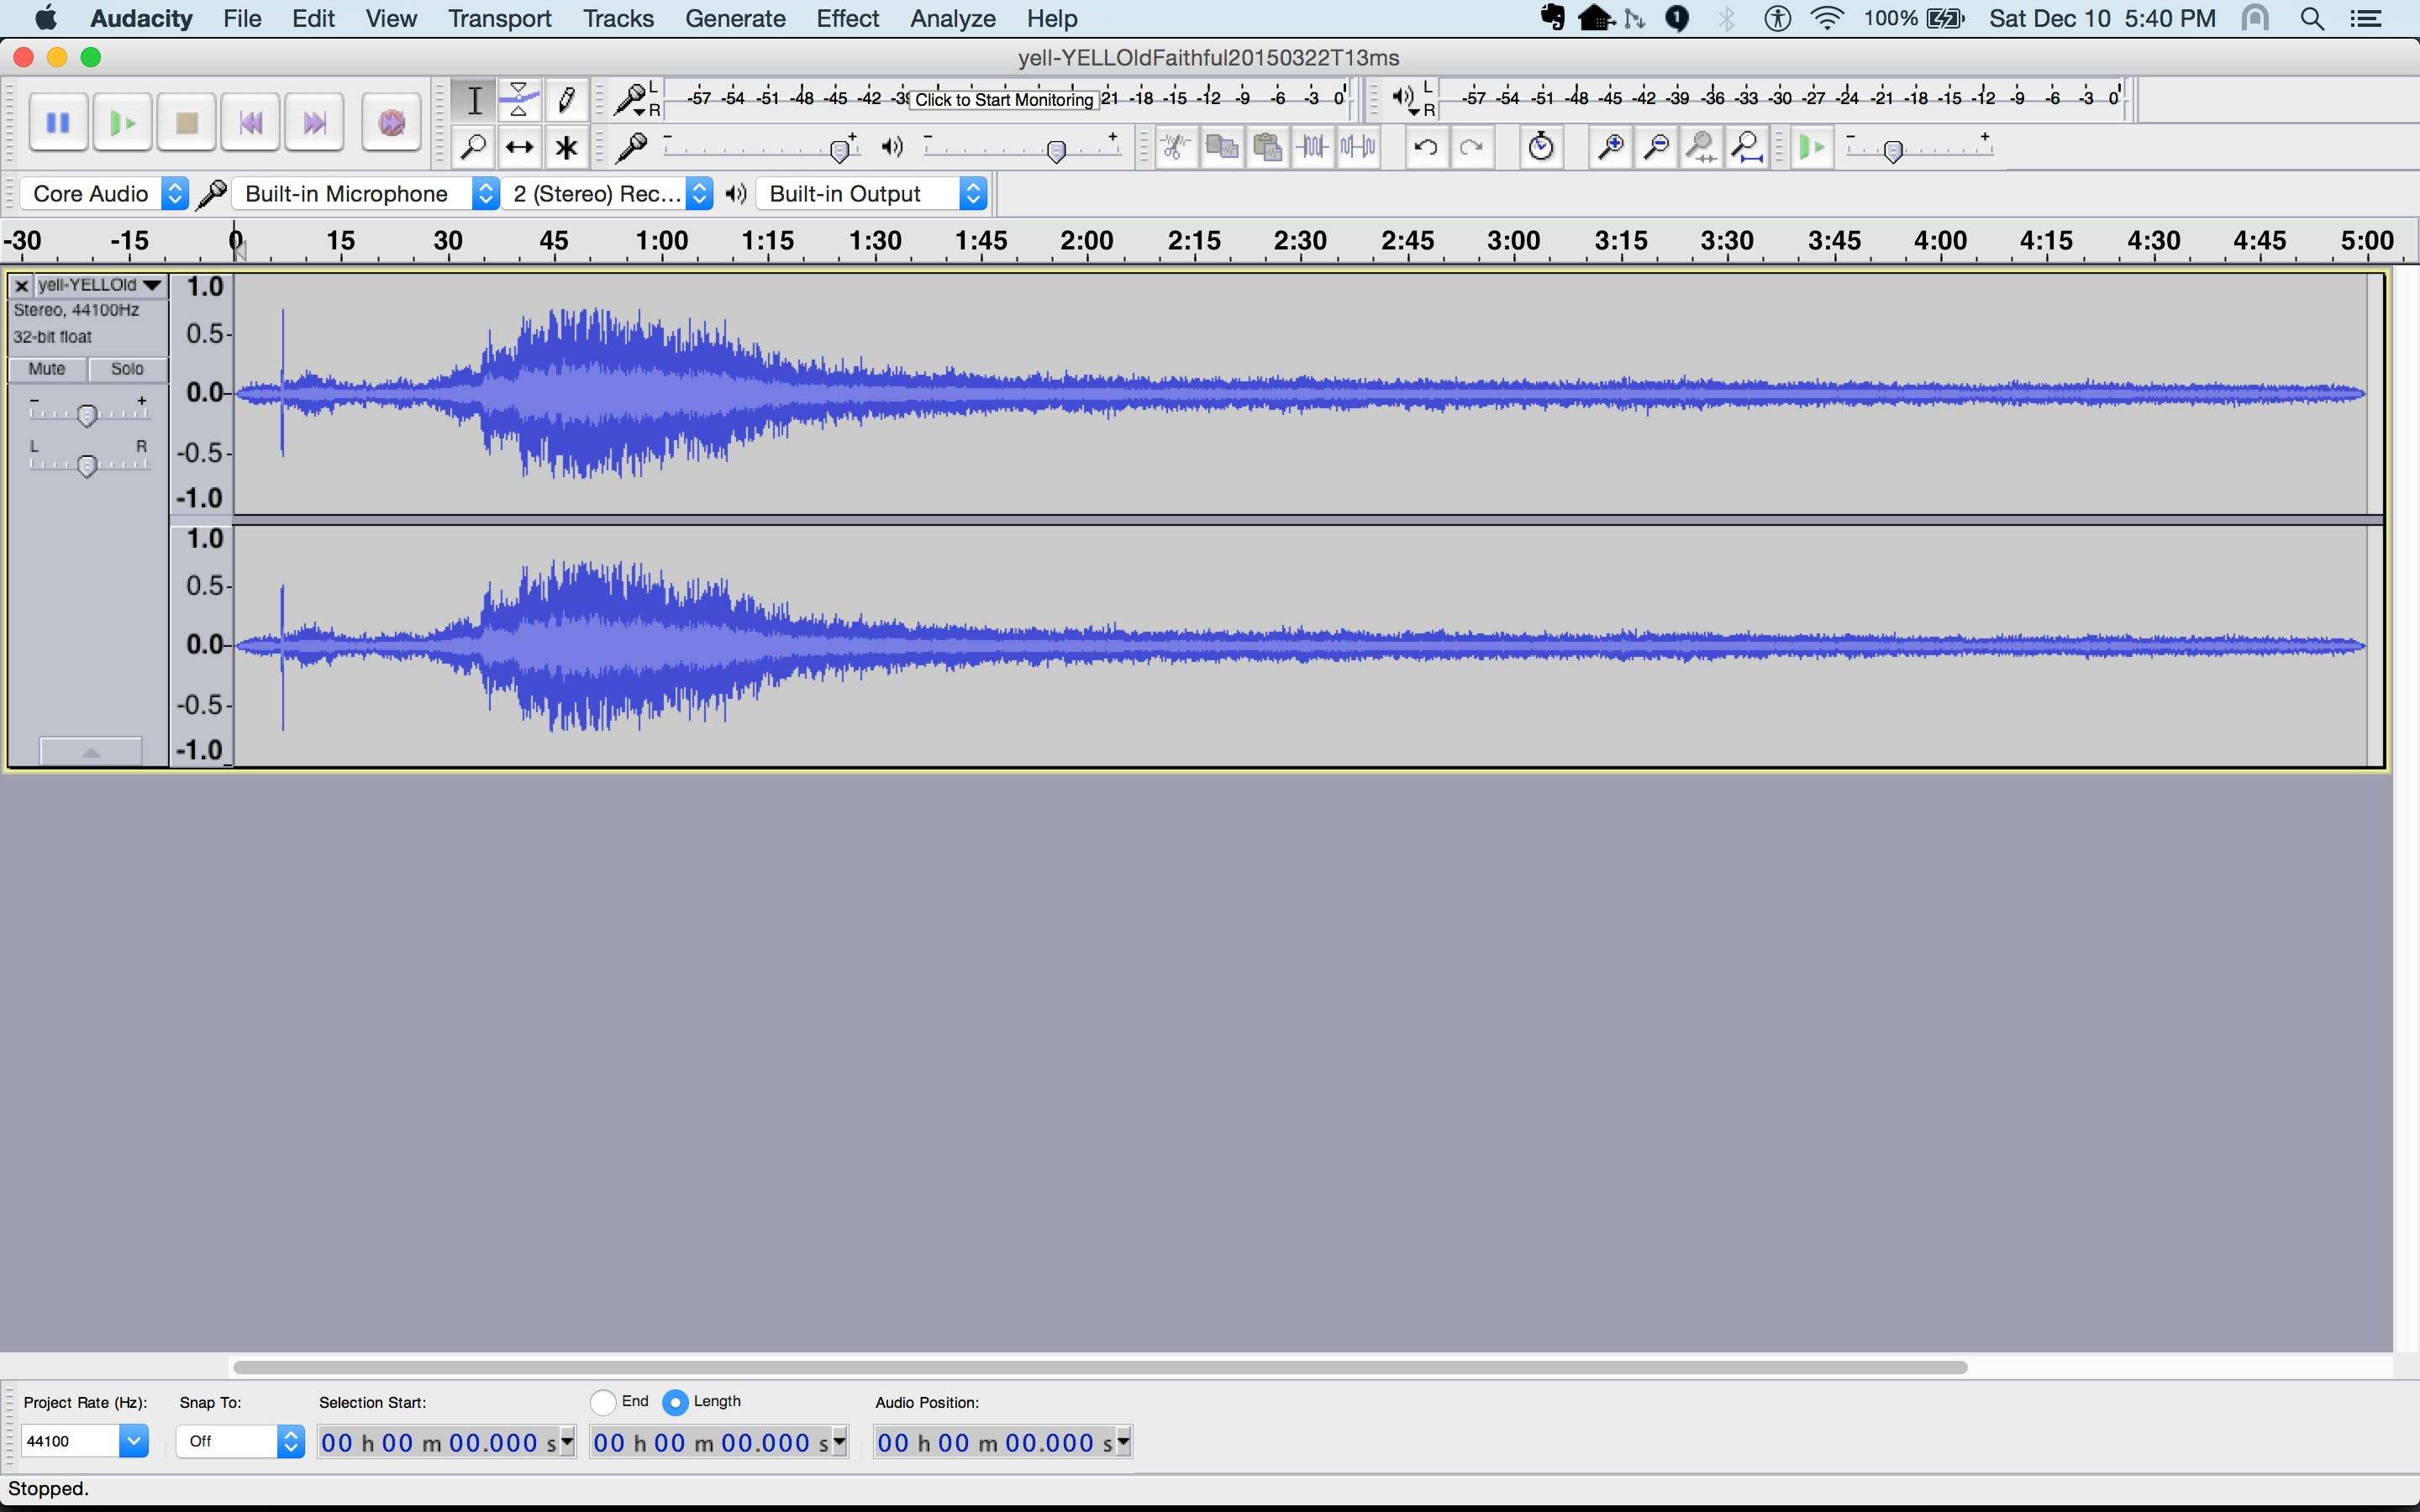 Open an audio file, listen to it, and identify a short segment to use. I used ~10 seconds.